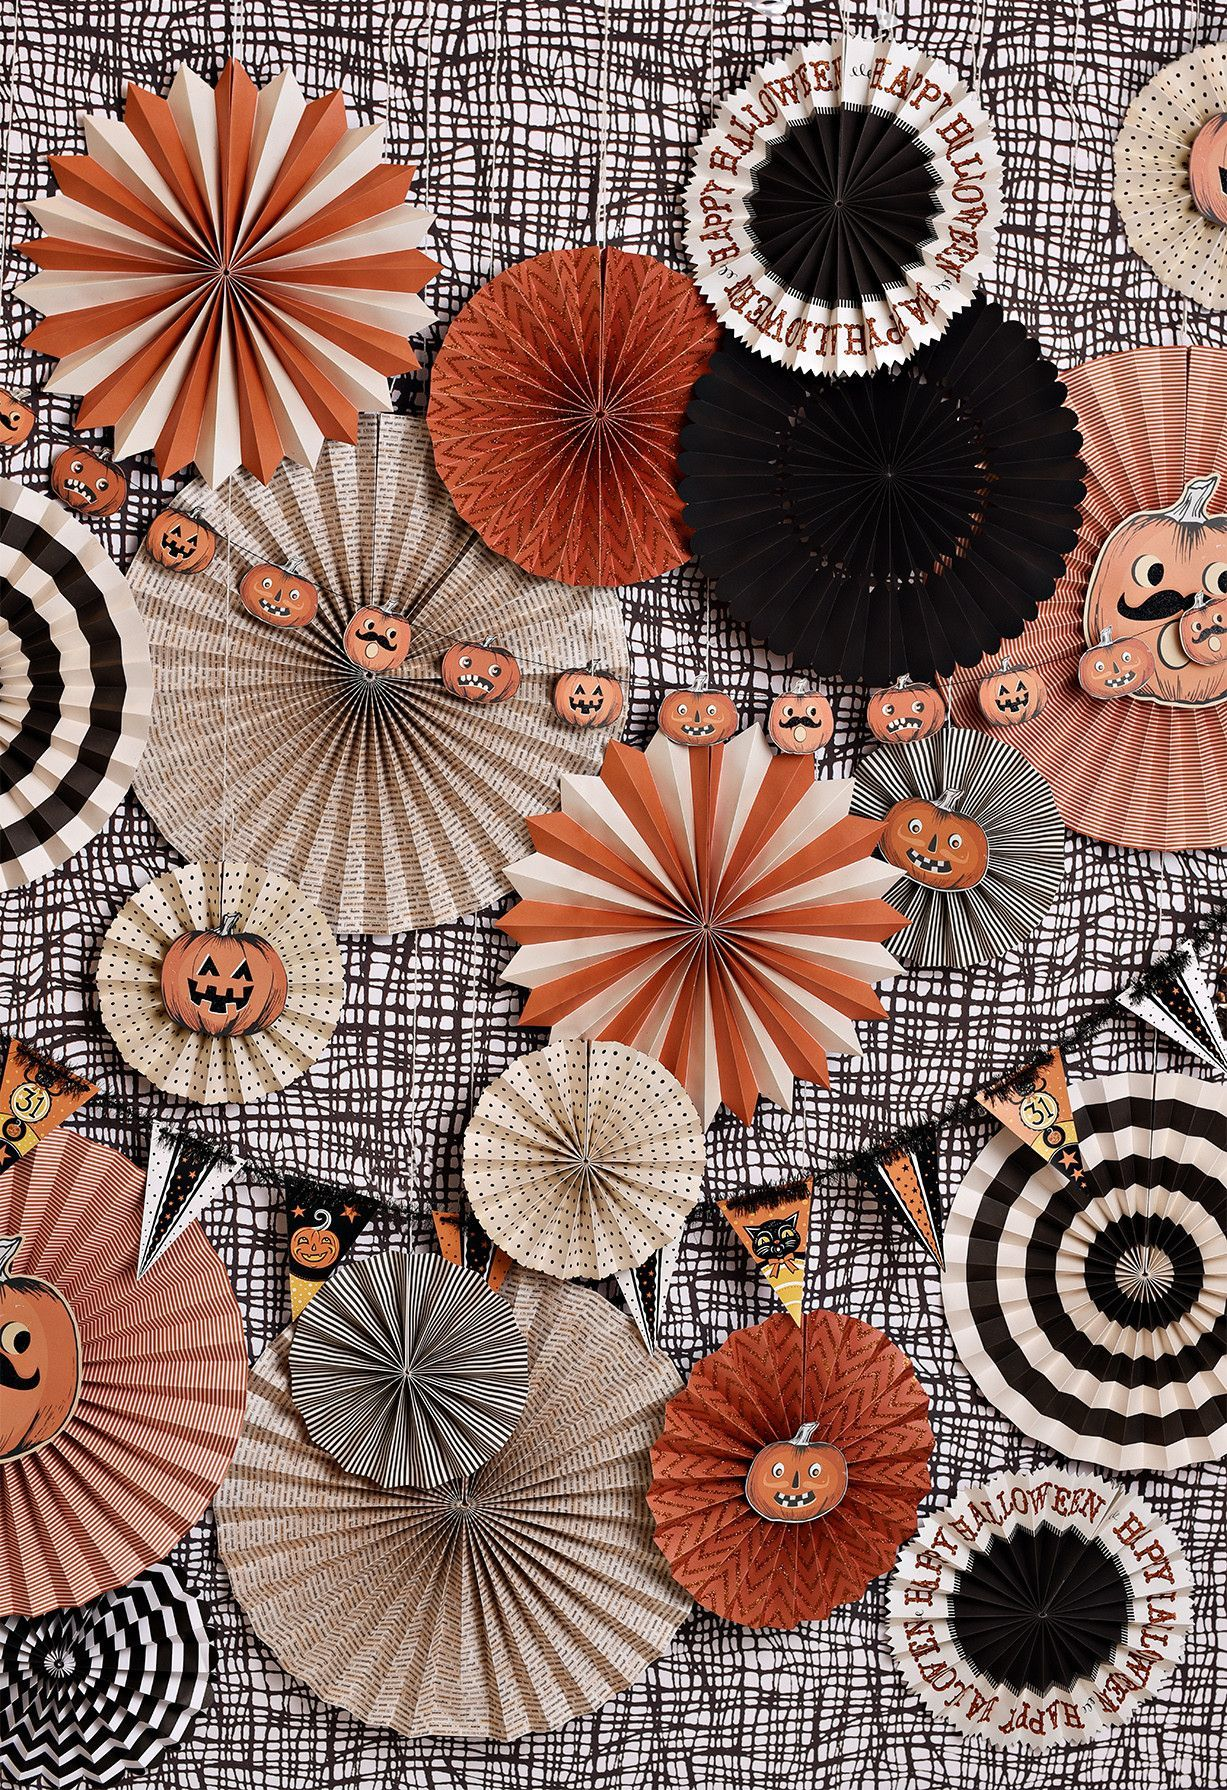 Fall into the season with Halloween colors delivered to your door when you buy the Vintage Halloween backdrop. Backdrop fans and banners by My Mind's Eye. http://www.mymindseye.com/ Add variety and st